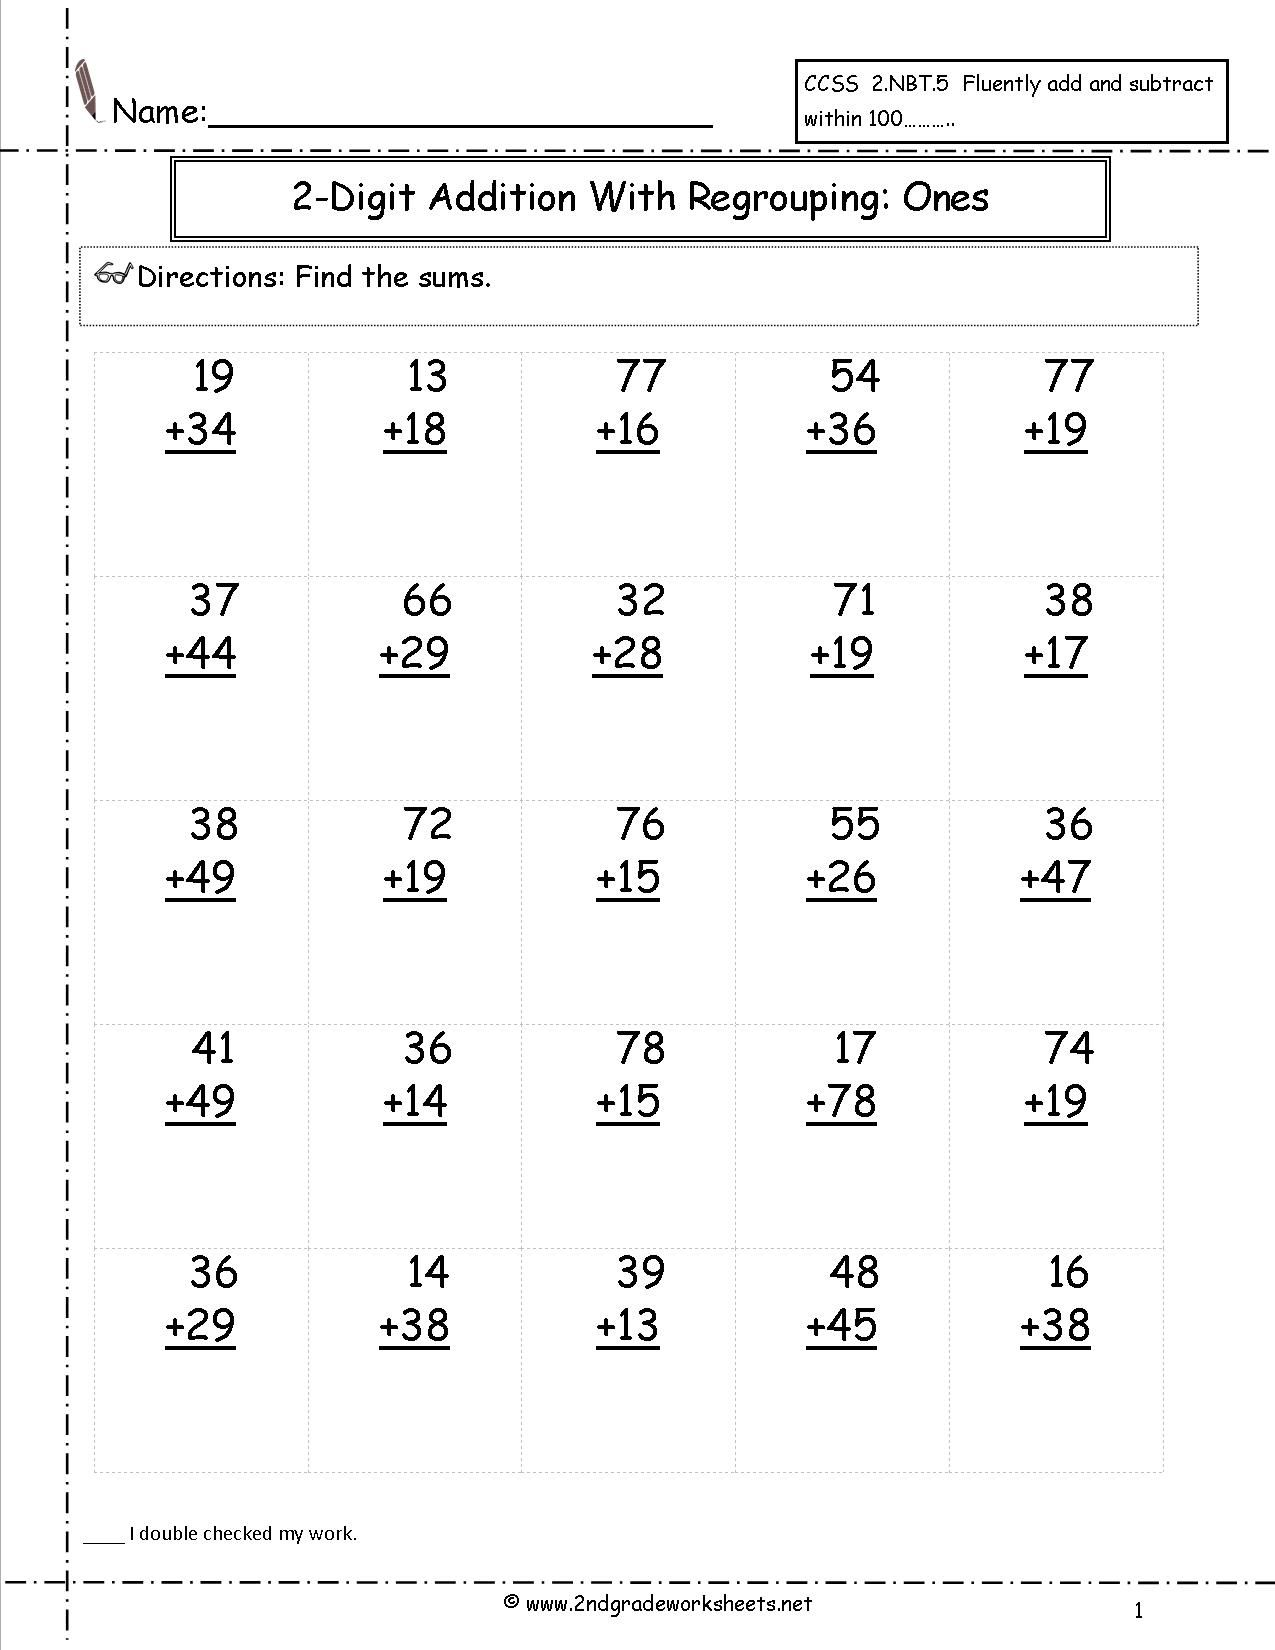 medium resolution of twodigitadditionwithregroupingonesplace25problems1.jpg (1275×1650)   2nd  grade math worksheets